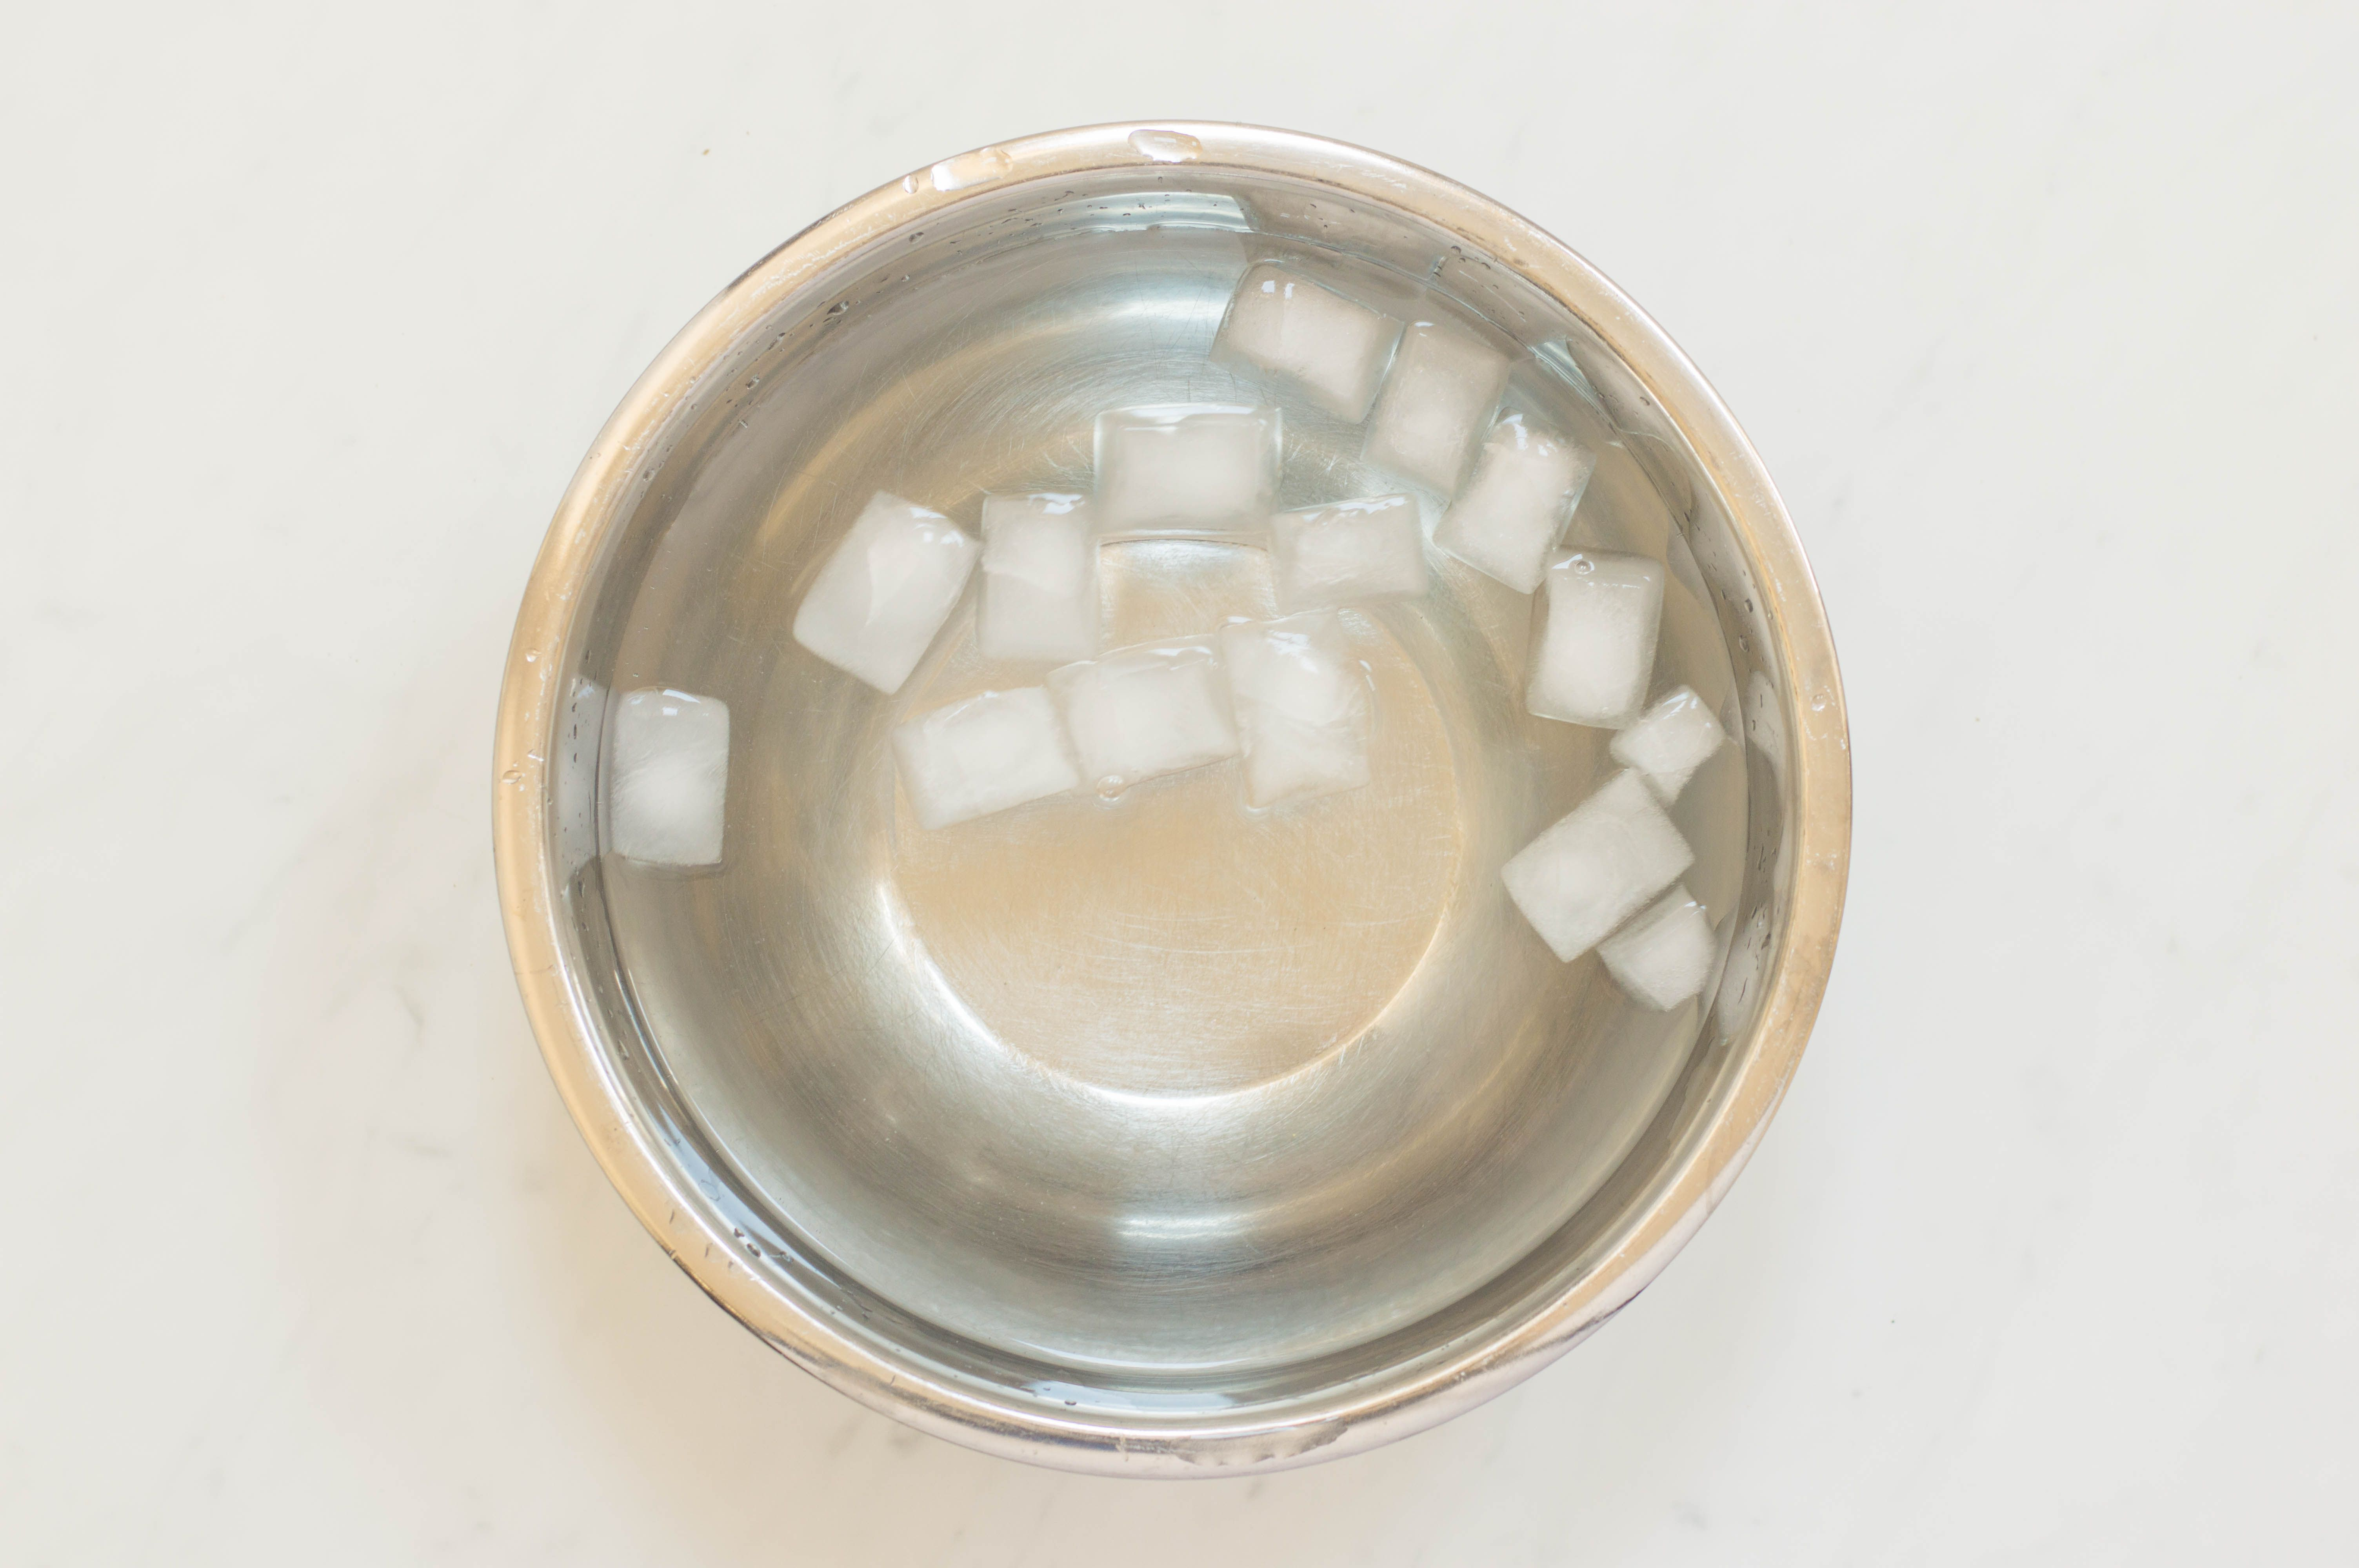 Fill a large bowl with ice